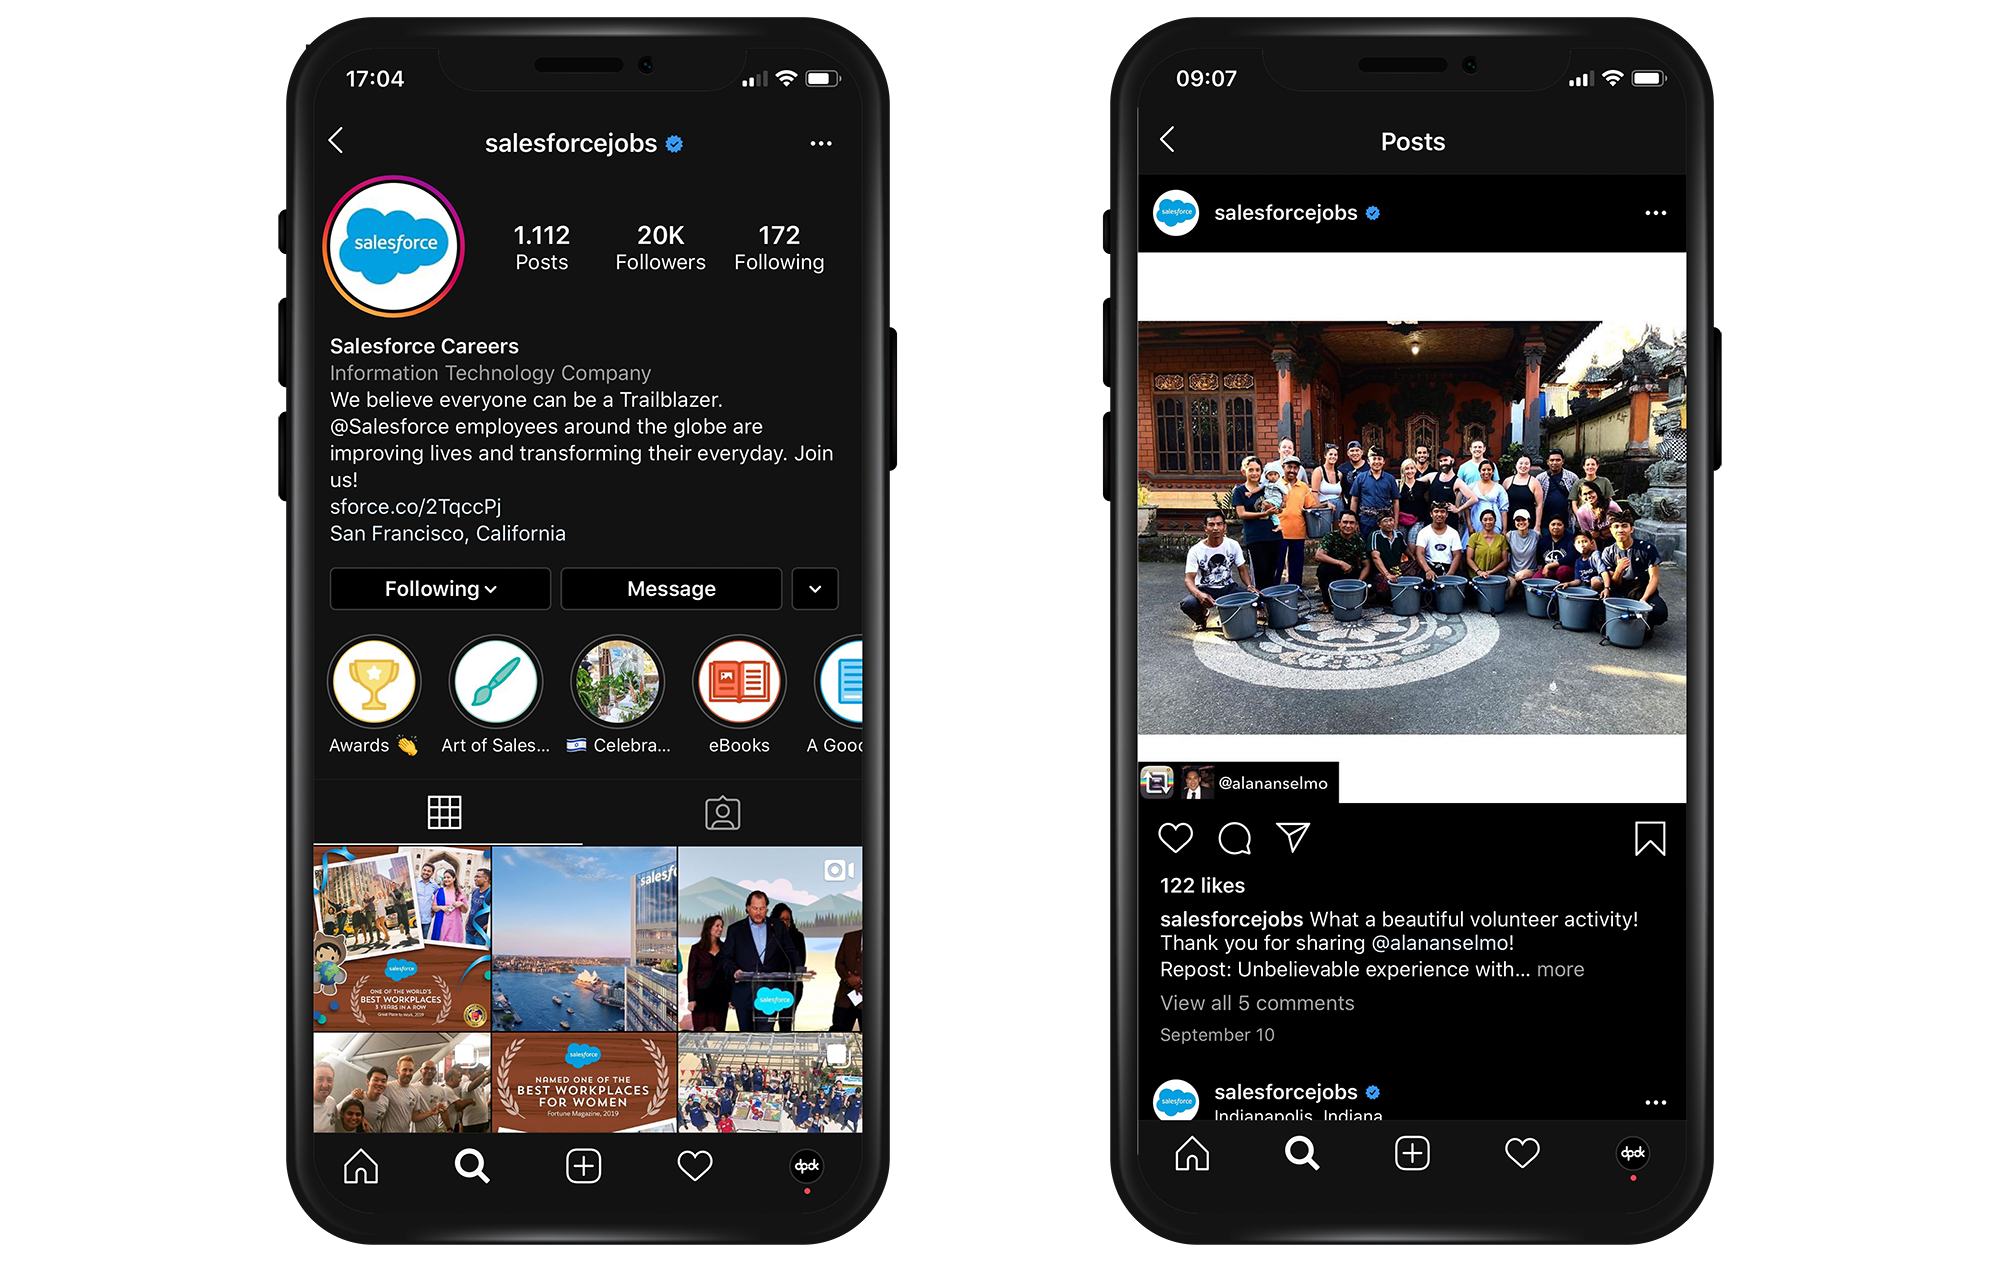 Salesforce jobs Instagram